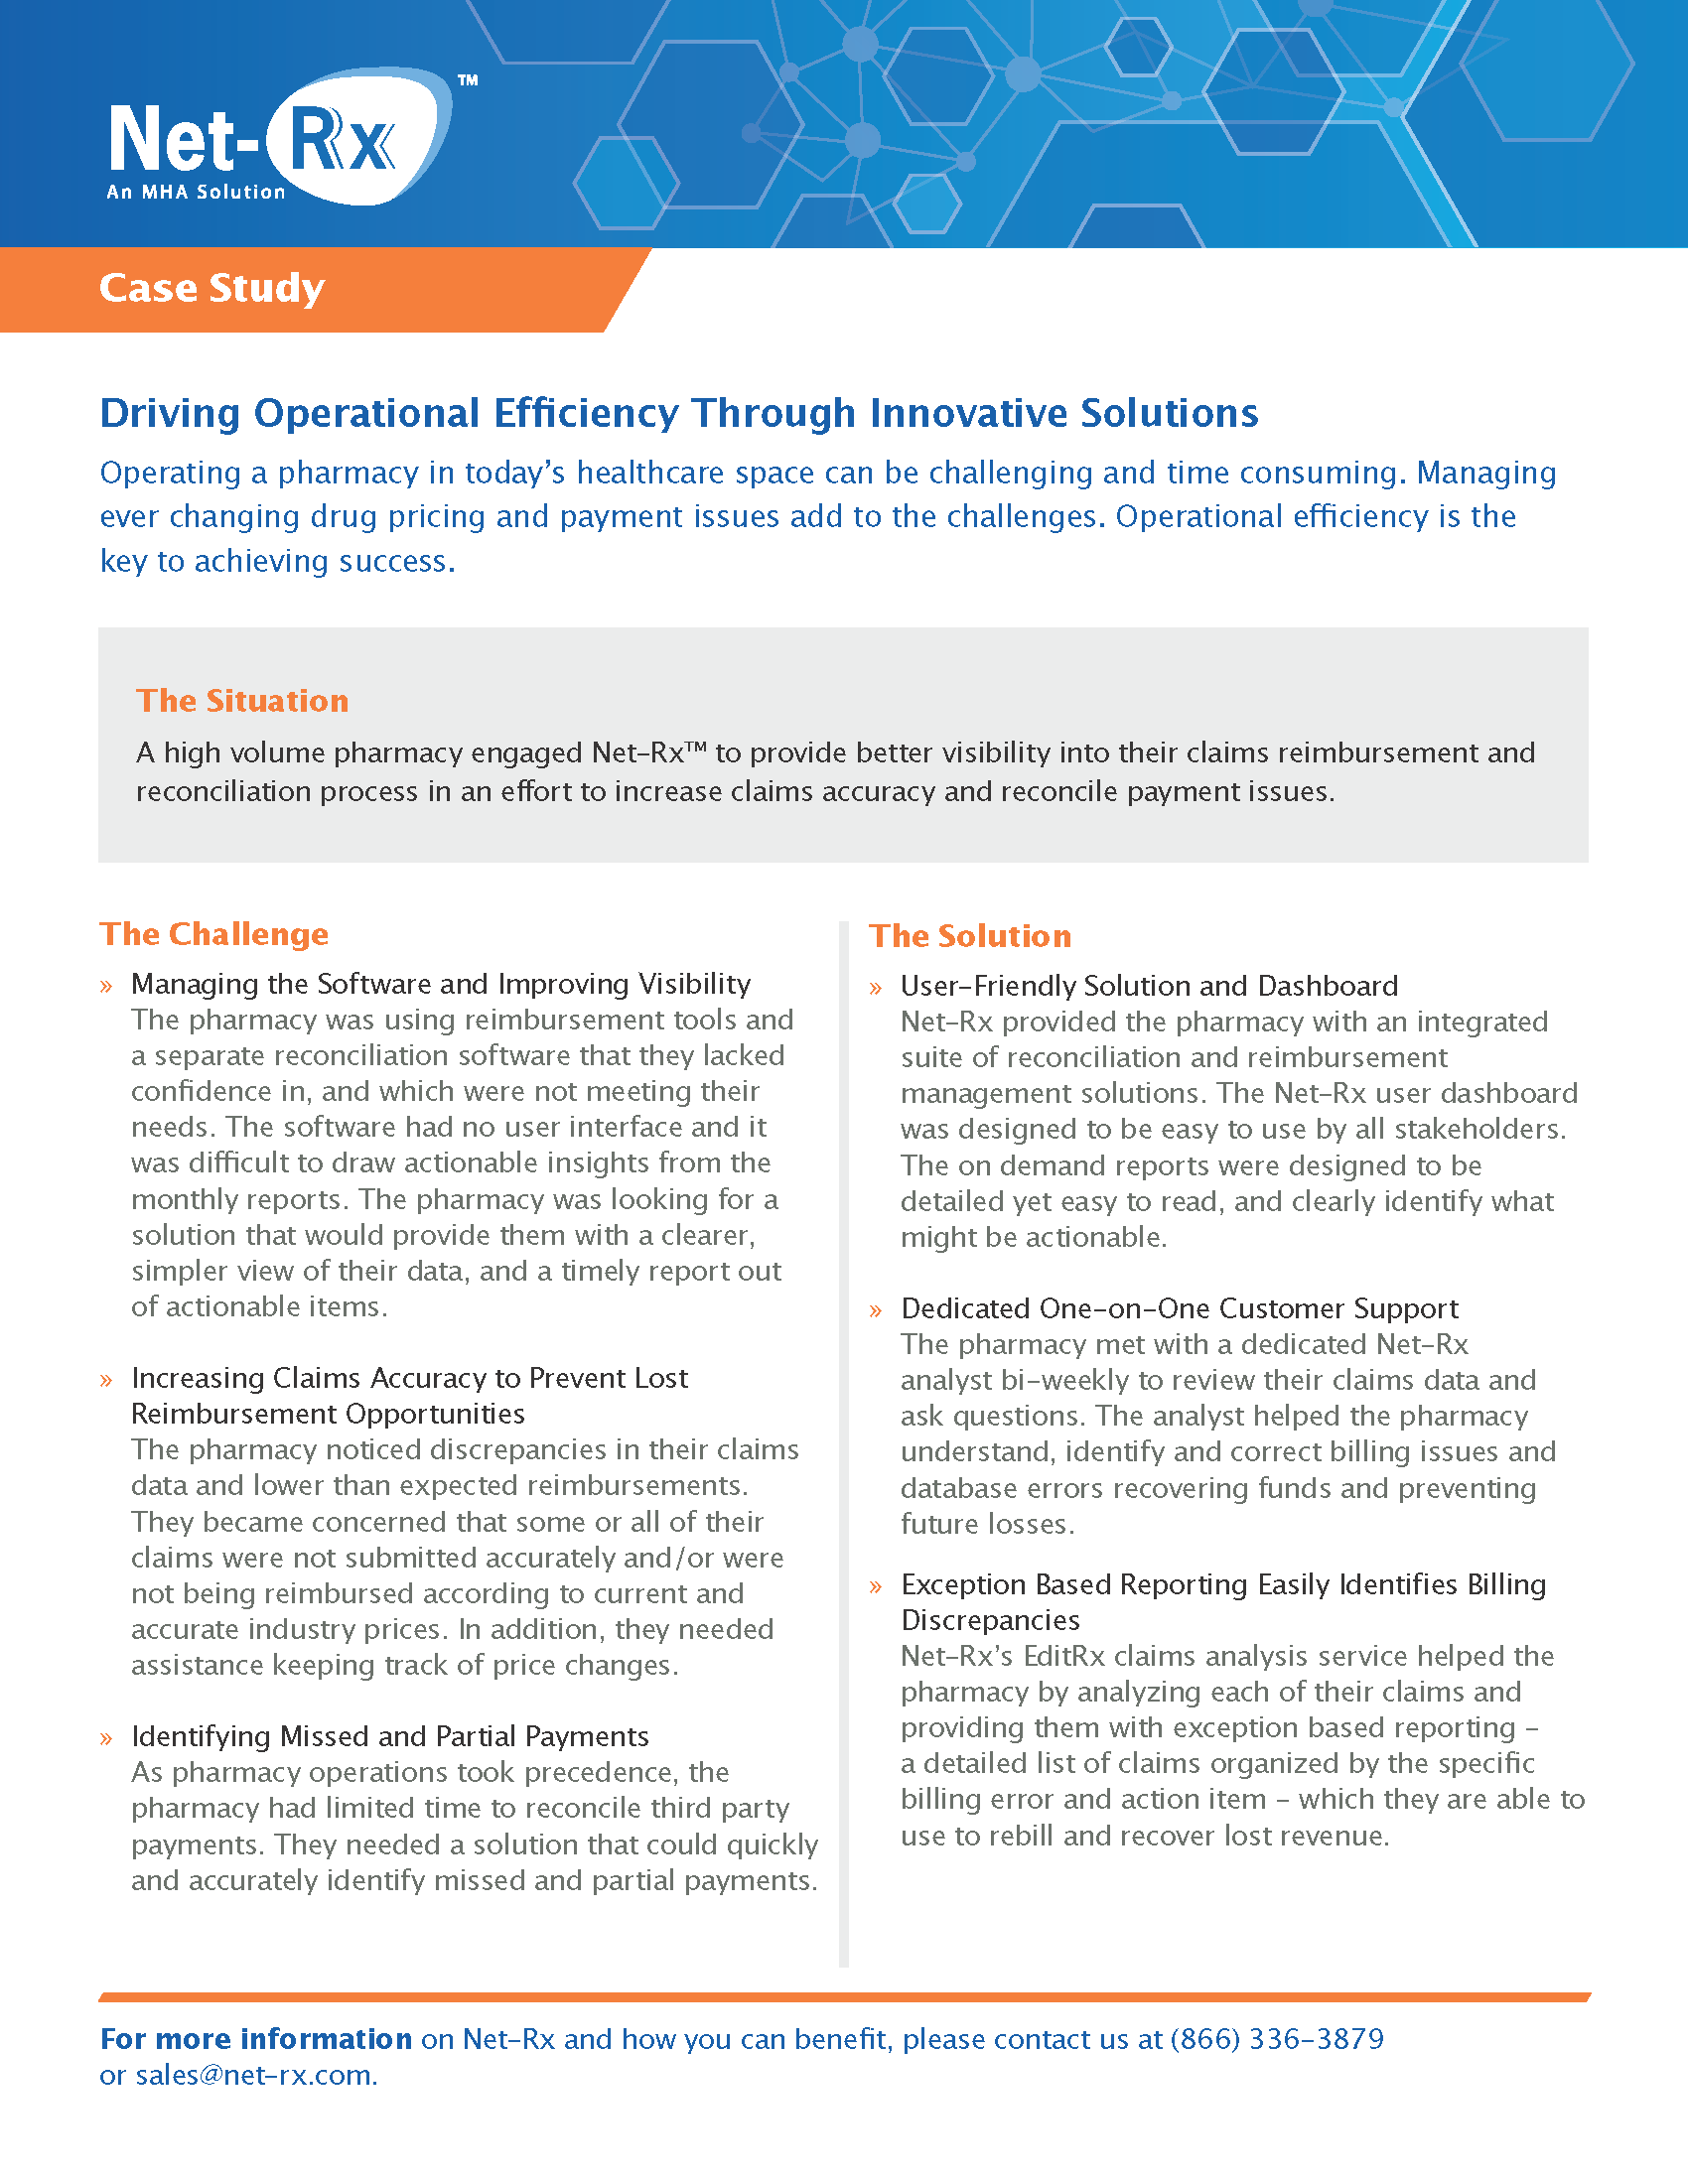 NetRx_CaseStudy_07-17-20 - COVID version_Page_1.png